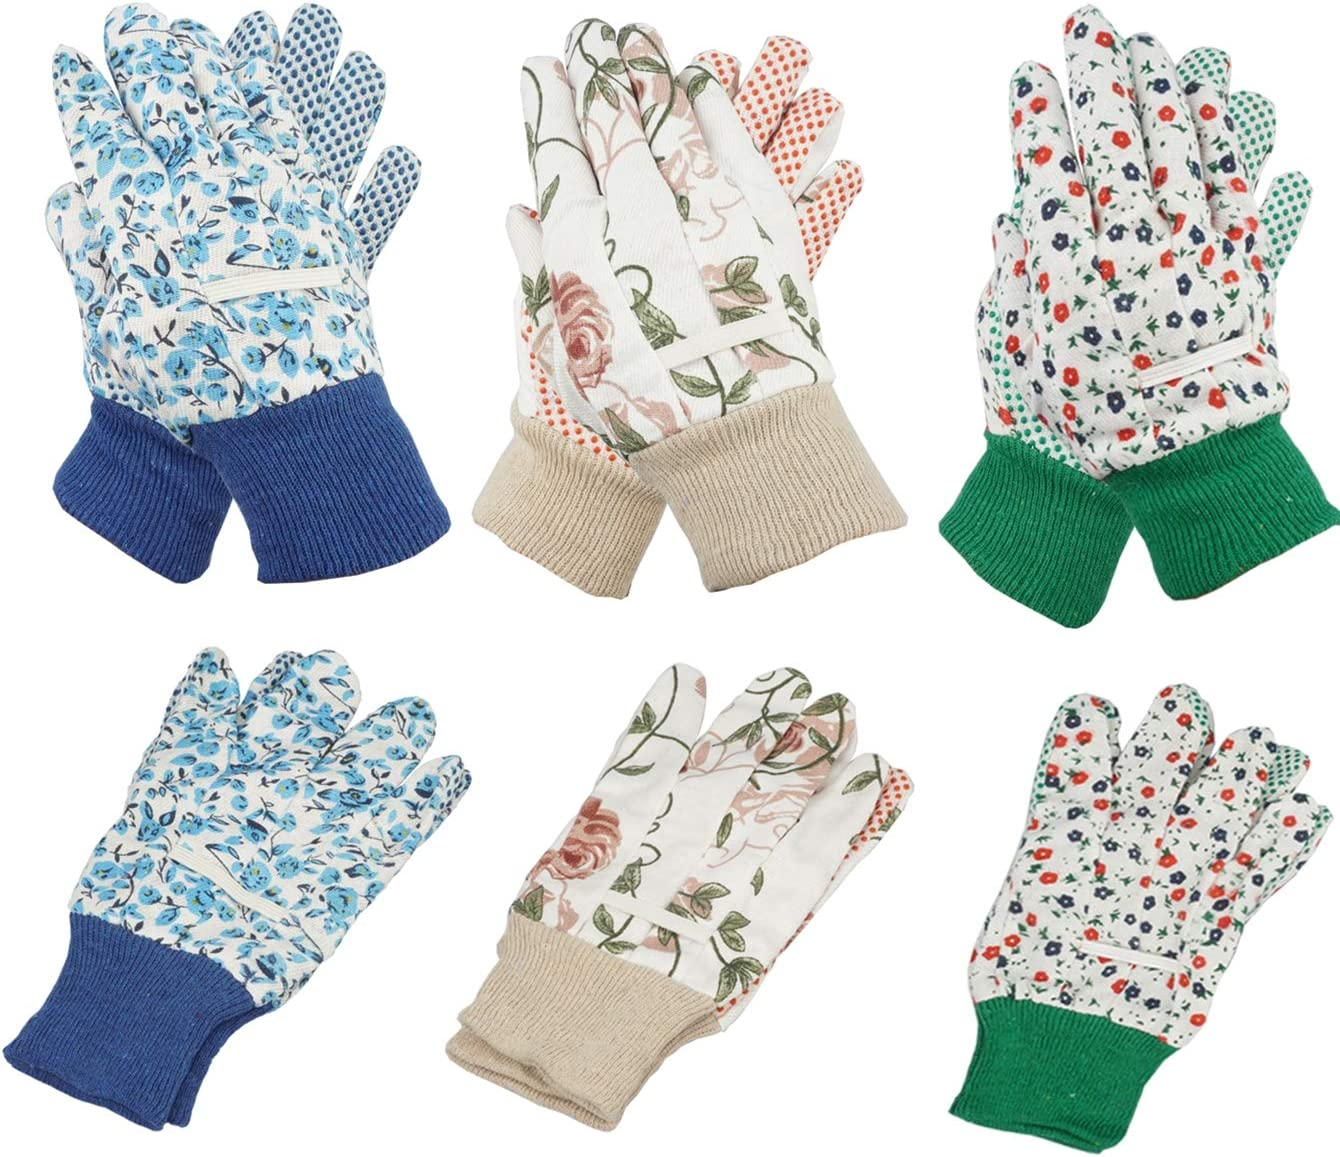 YOPAY 6 Pairs Garden Gloves, Soft Jersey Garden Gloves for Women, Men, Rubbuer Dots Cotton Working Gloves for Planting, Seeding, Fishing, Restoration Work, 3 Colors